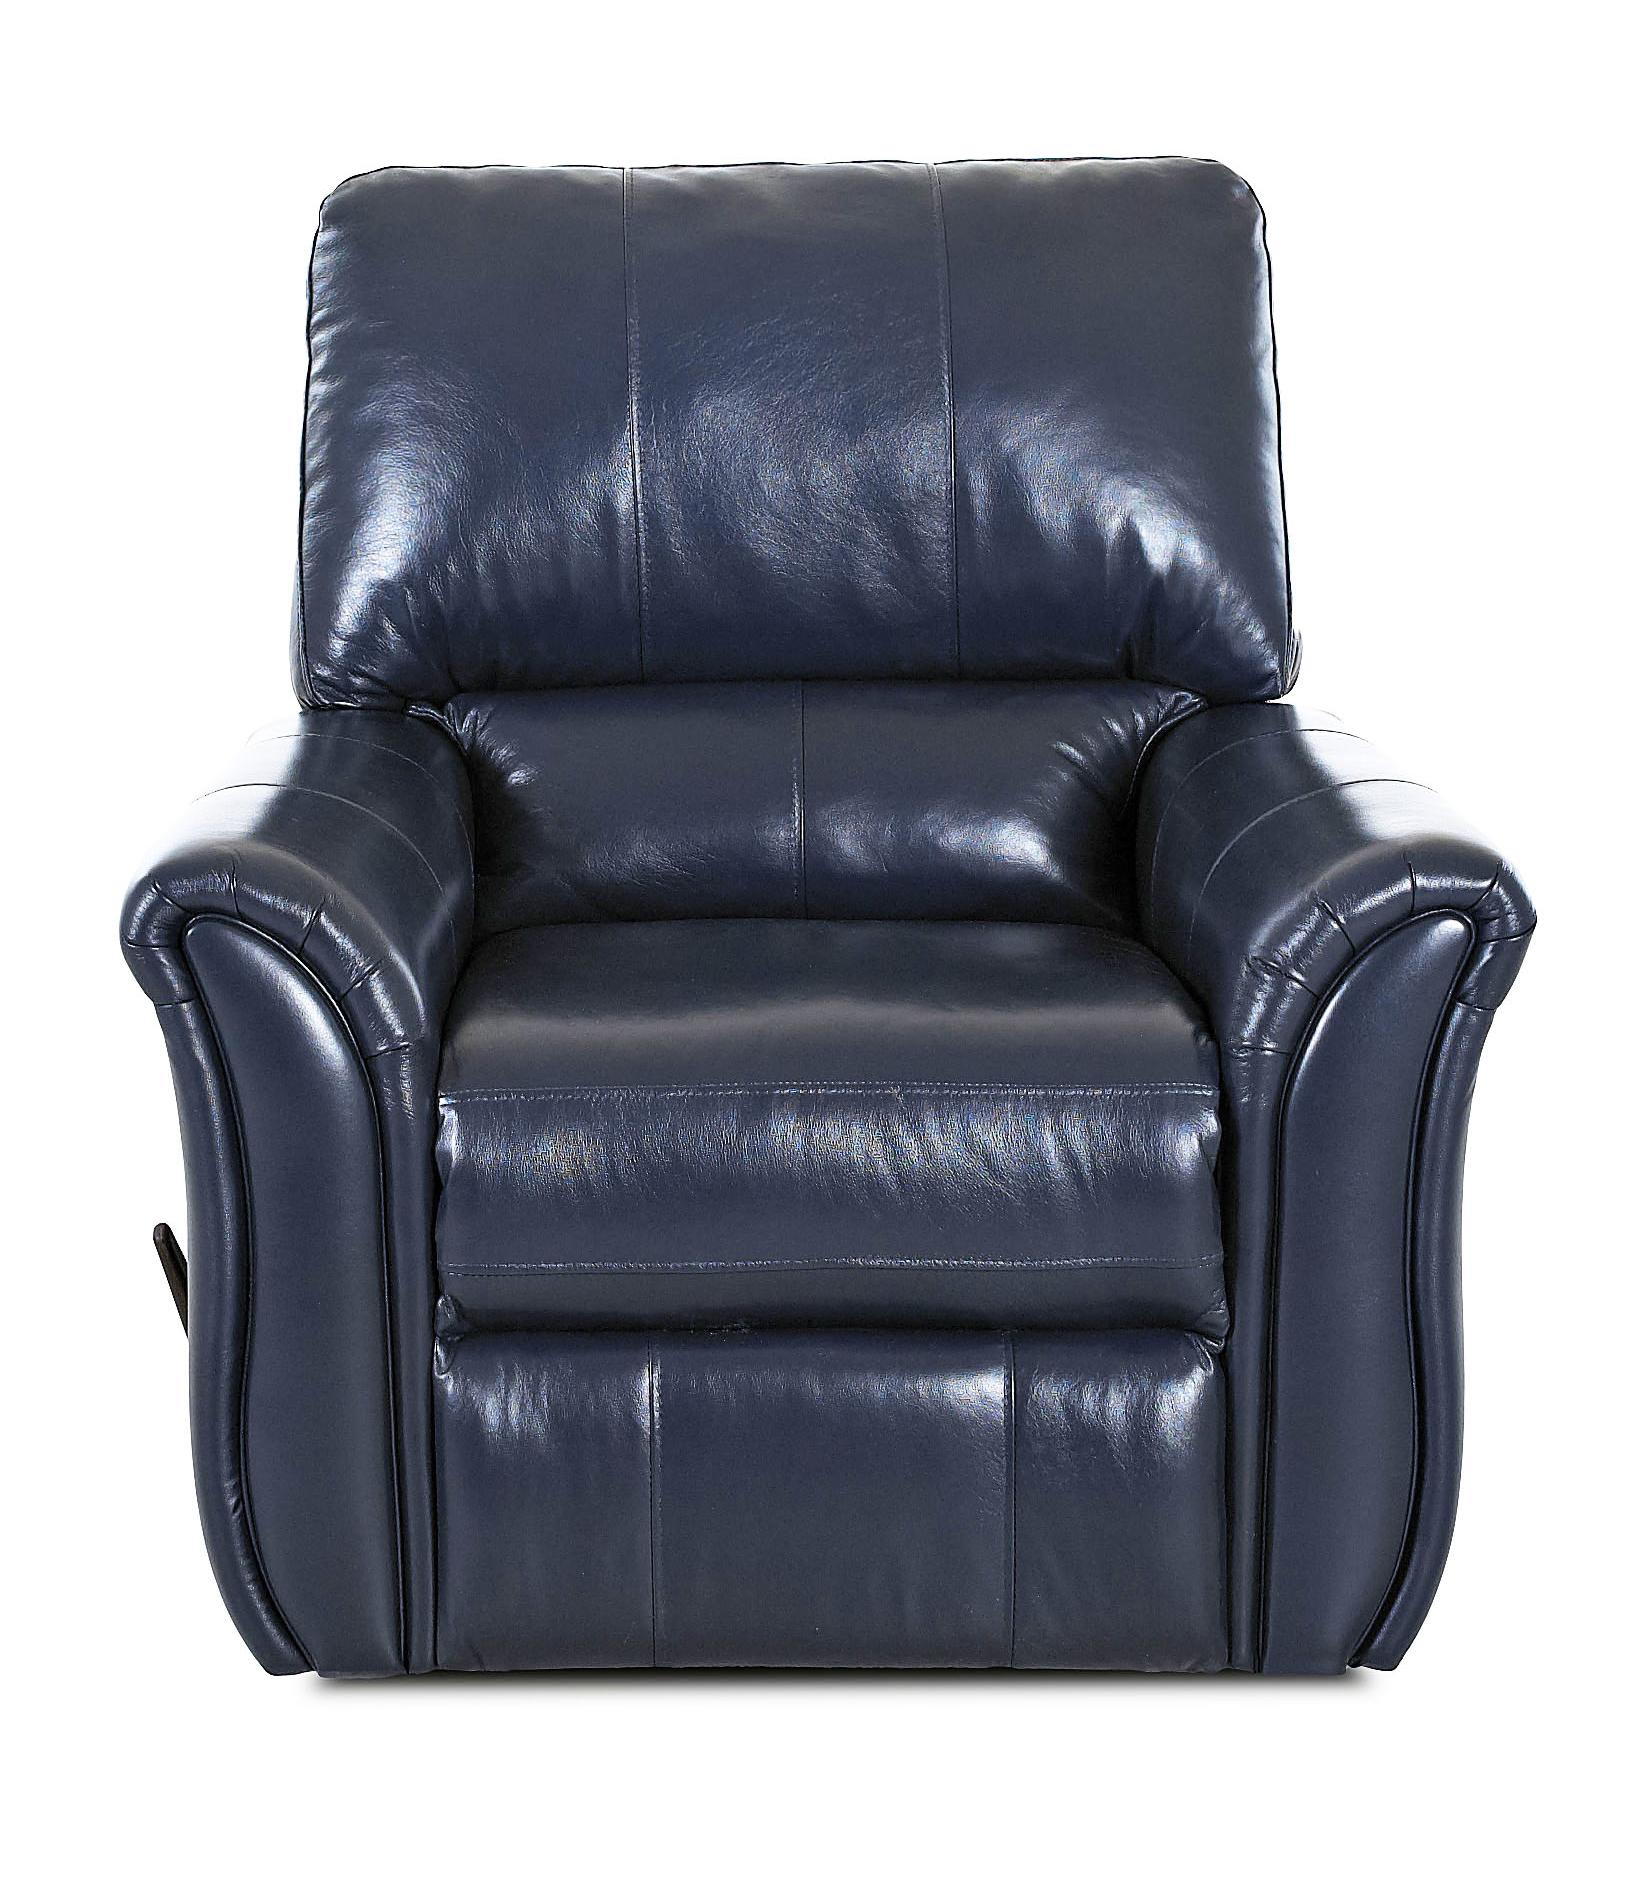 Klaussner Marcus 71903 Casual Swivel Rocking Reclining Chair - Item Number: LV71903H SRRC-OutsiderNavy